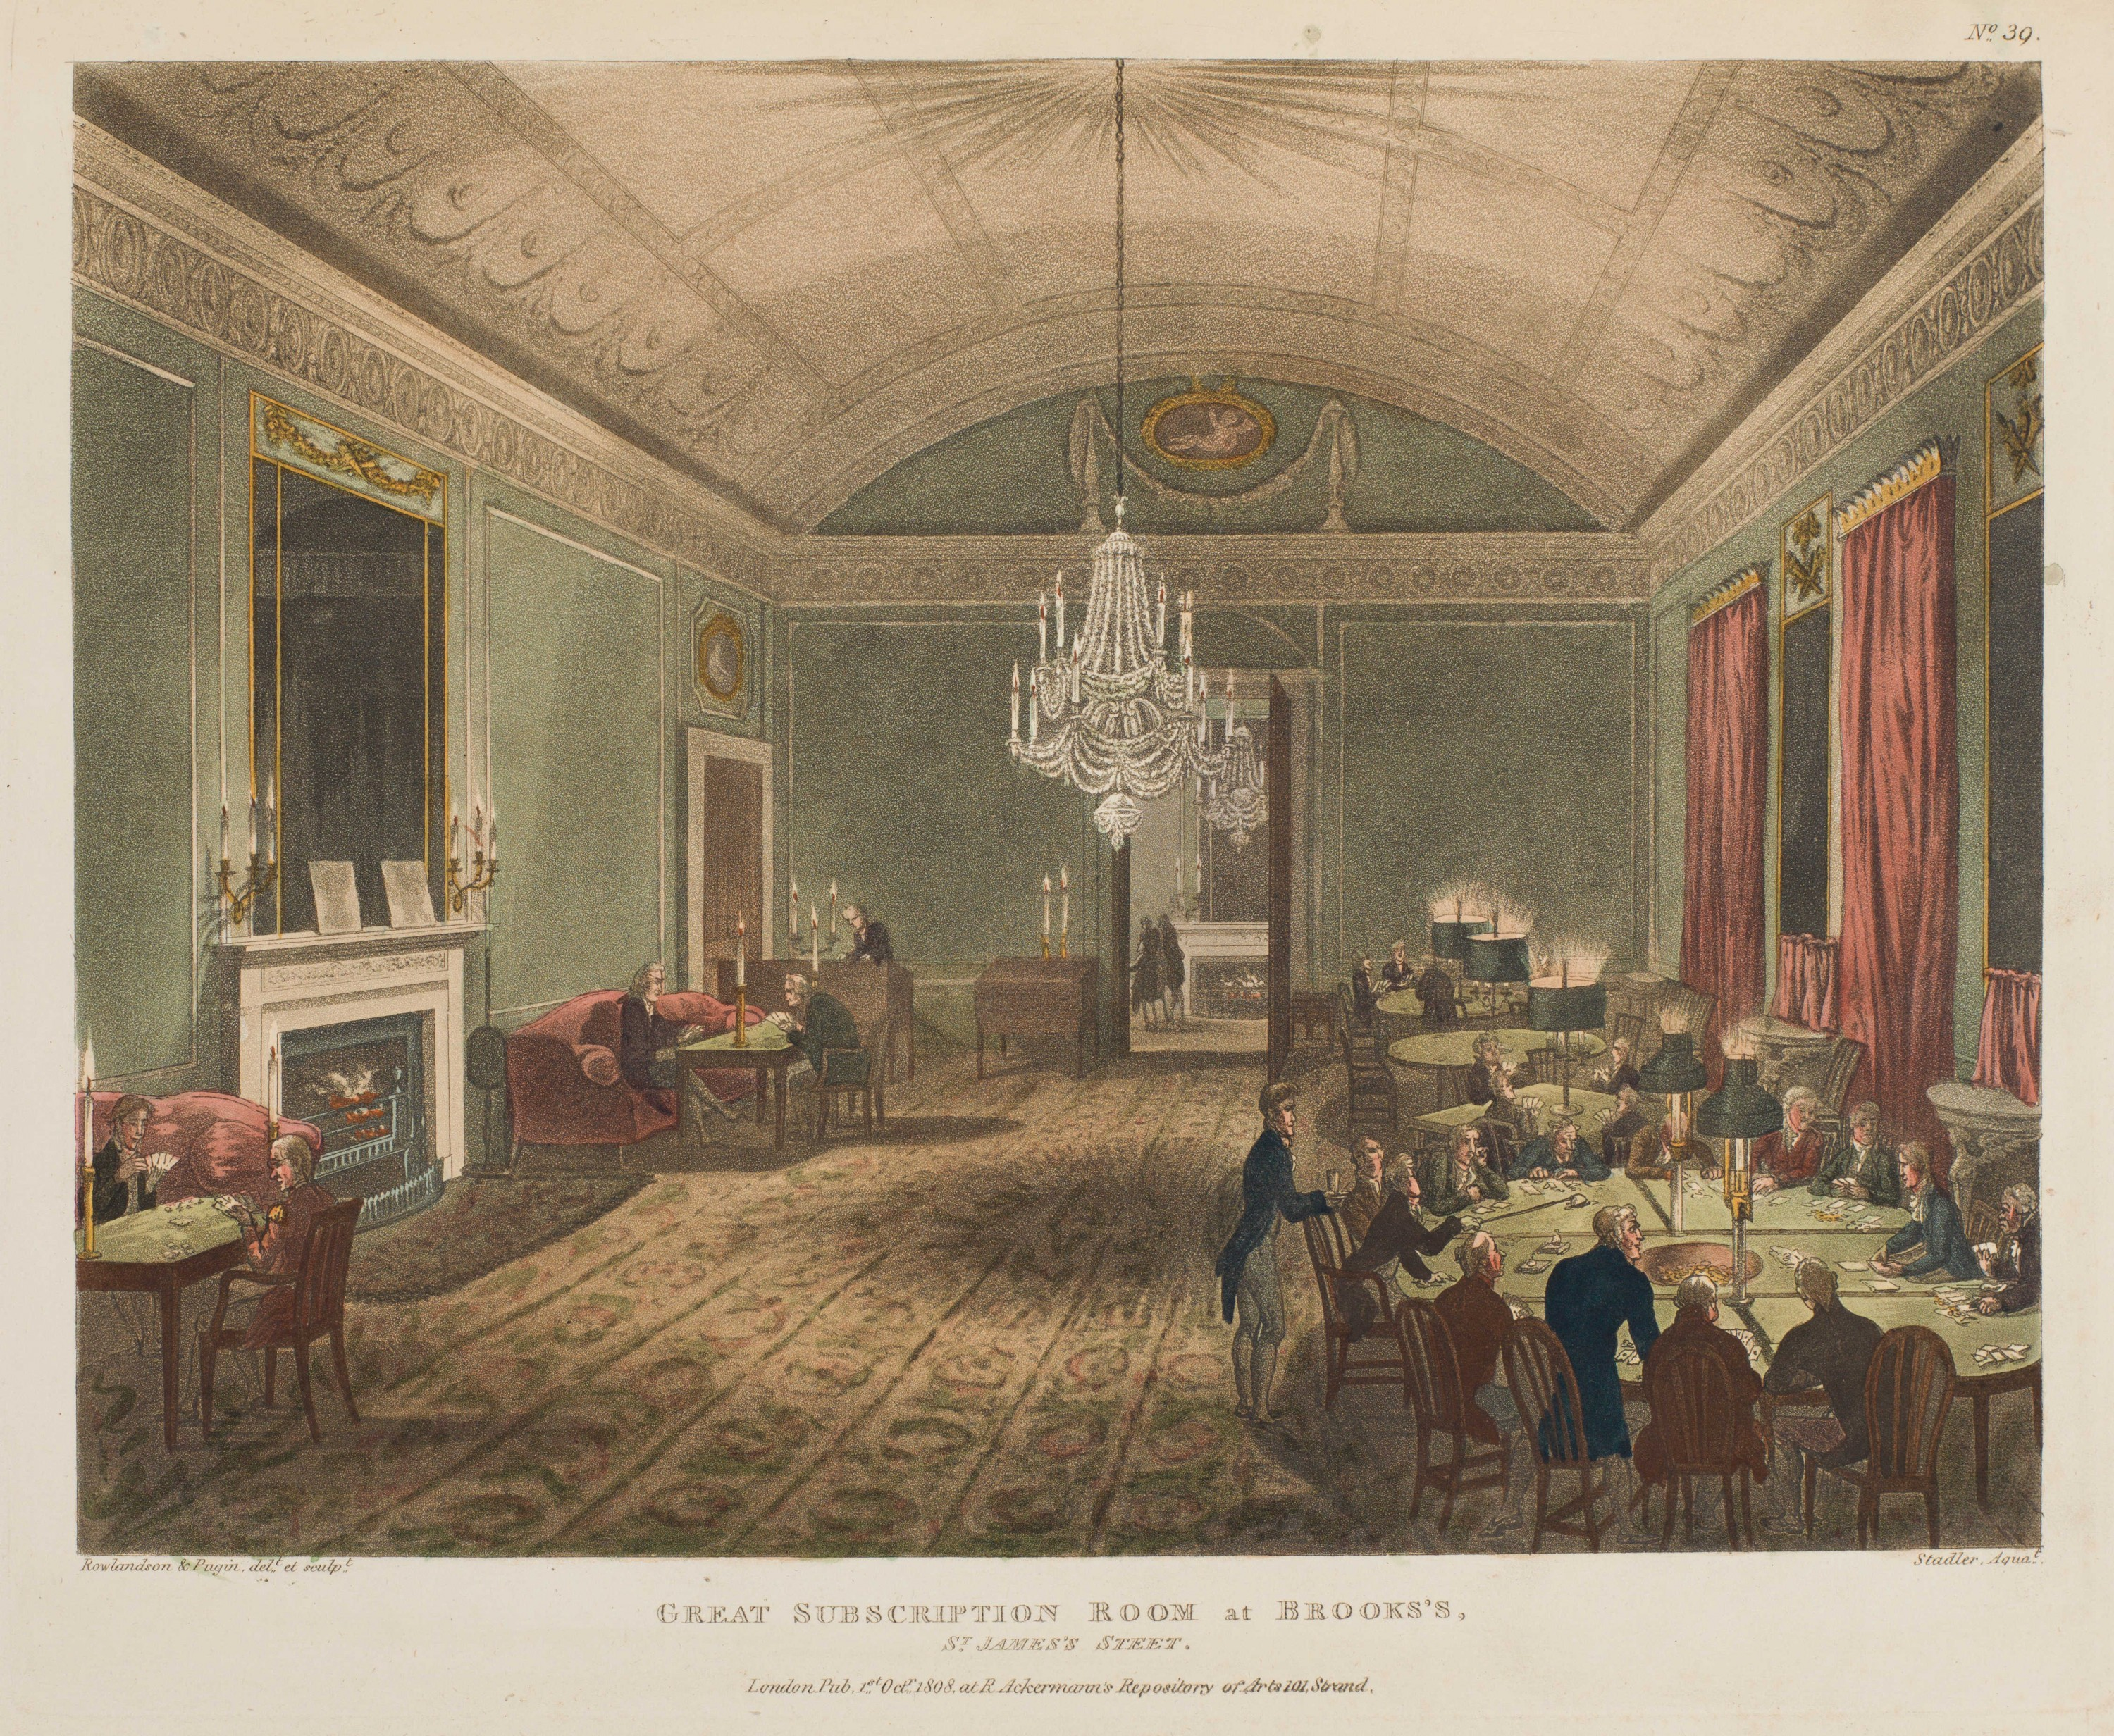 039 - Great Subscription Room at Brookss, St Jamess Street